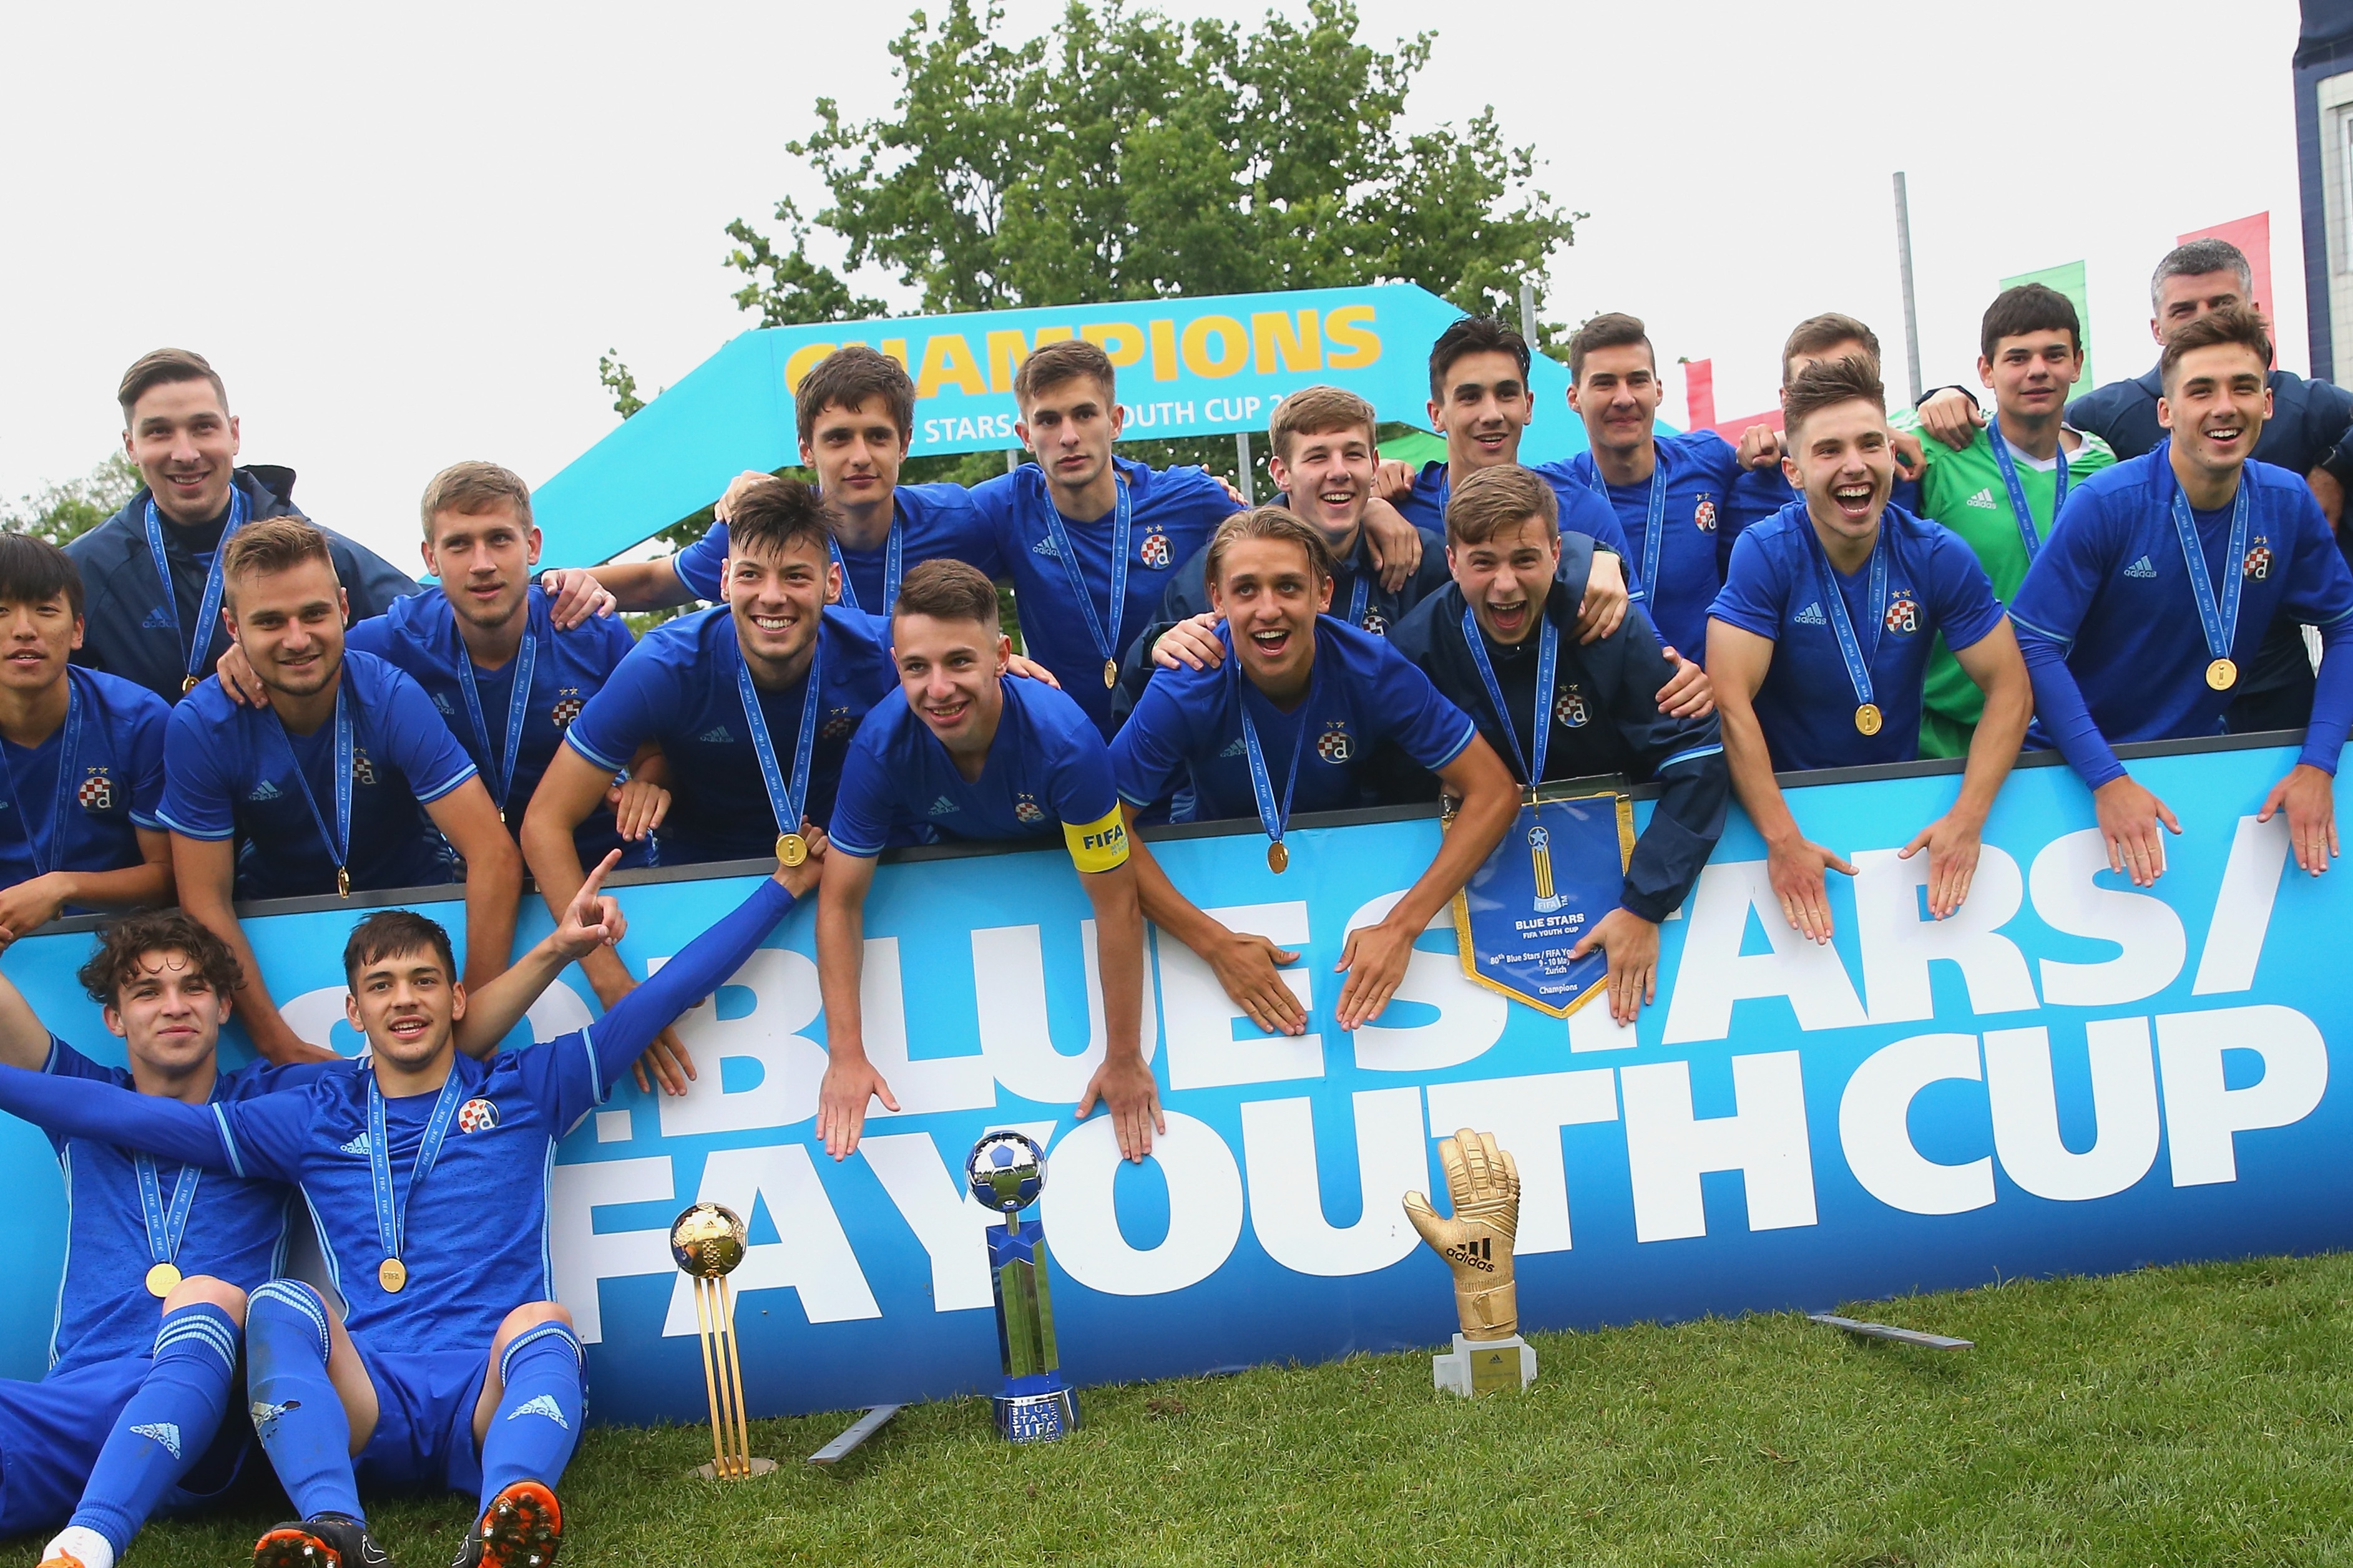 81. Blue Stars/FIFA Youth Cup